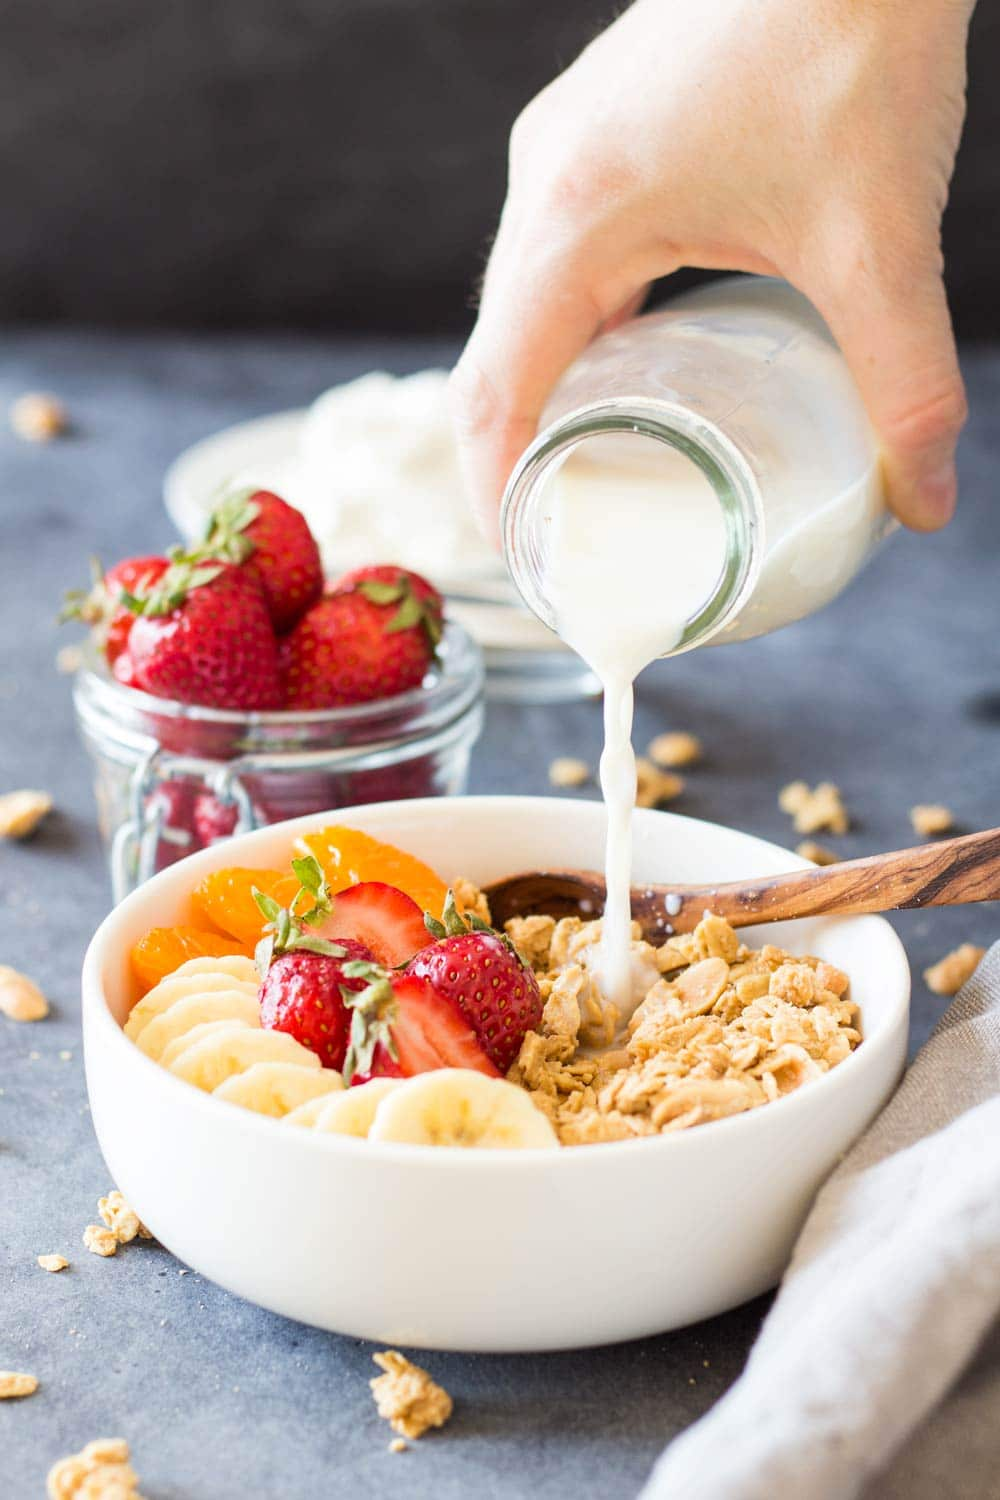 Pouring milk over peanut butter granola and fruit in a bowl